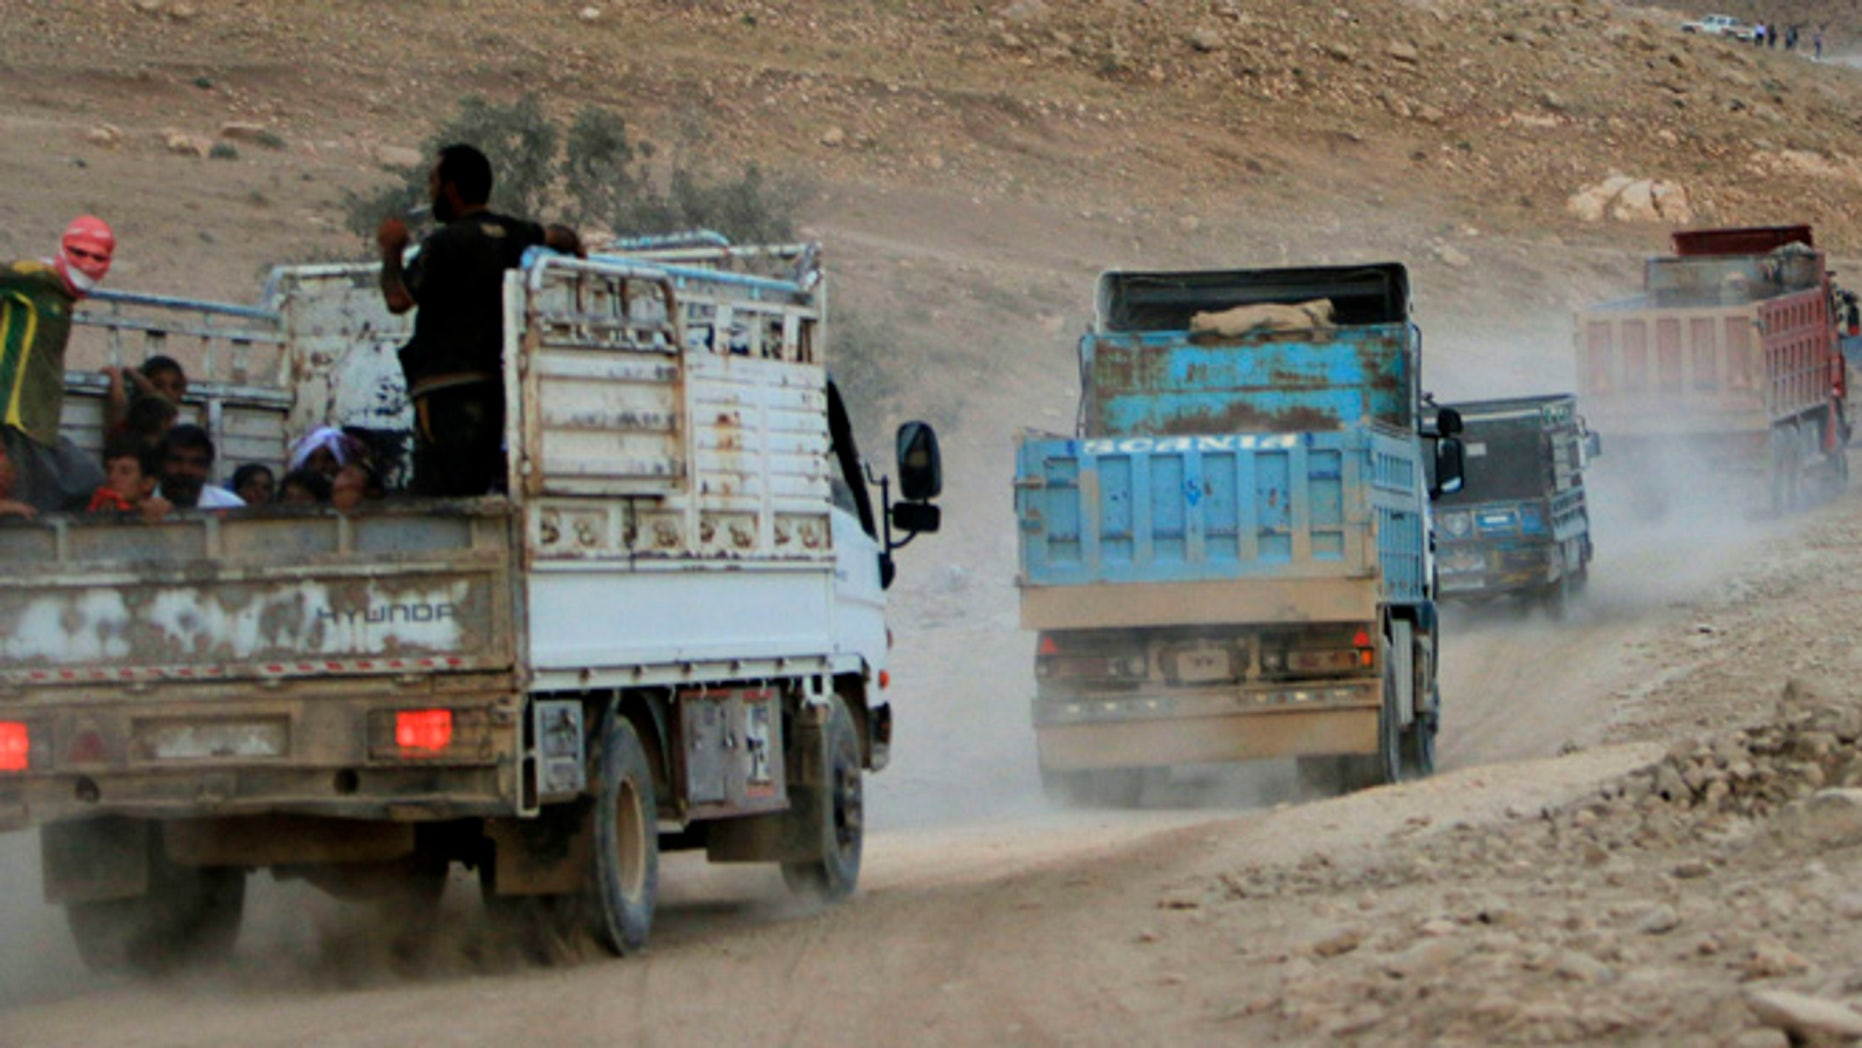 August 13, 2014: Displaced people from the Yazidi religious minority, fleeing violence from forces loyal to the Islamic State in Sinjar town, ride trucks as they are evacuated from Mount Sinjar in northern Iraq with the help of members of the Kurdish People's Protection Units (YPG), as they make their way towards Newrooz camp in Syria's al-Hasakah province.